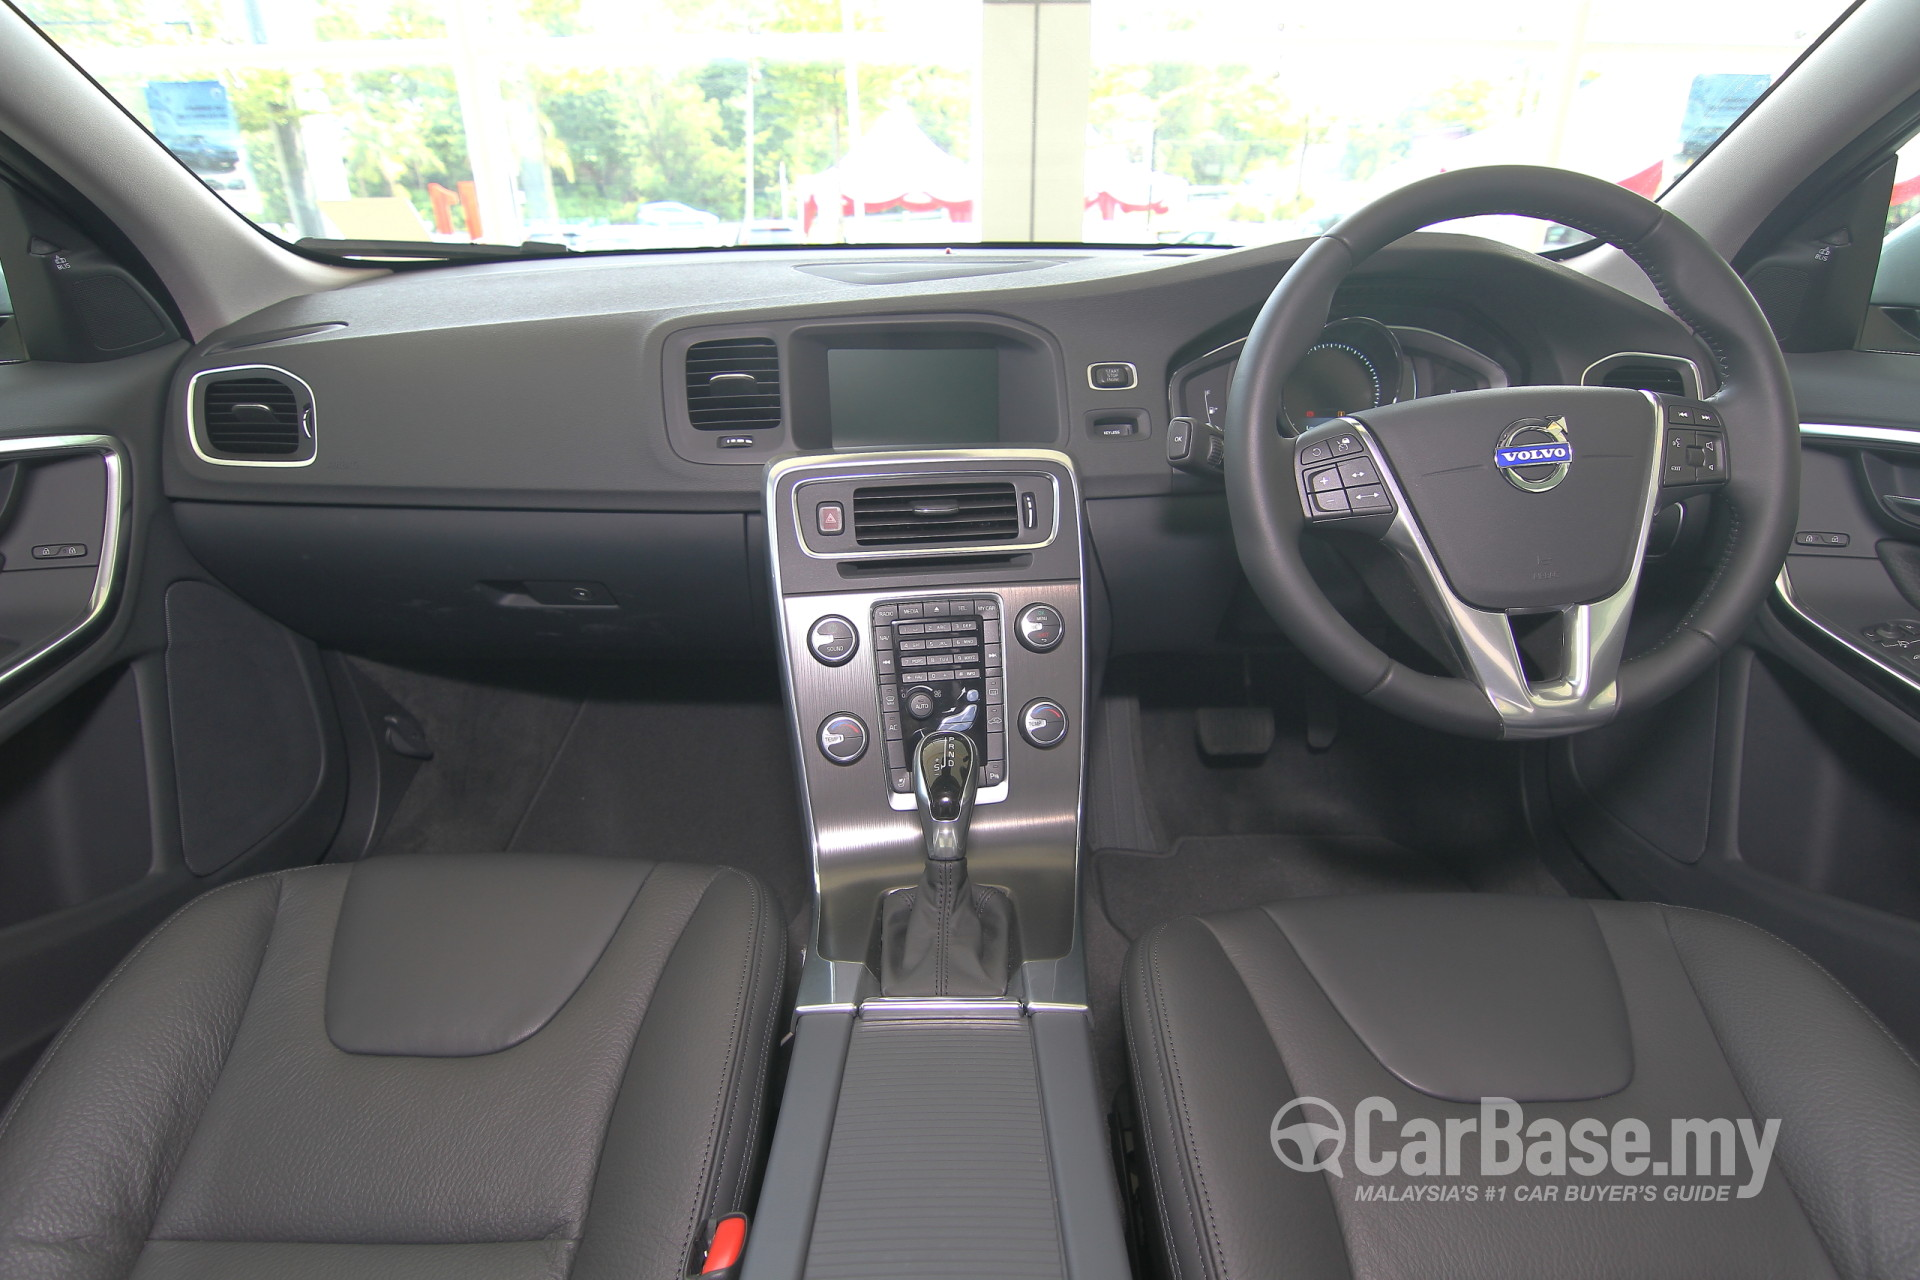 Volvo S60 Mk2 Facelift 2015 Interior Image 19739 In Malaysia Reviews Specs Prices